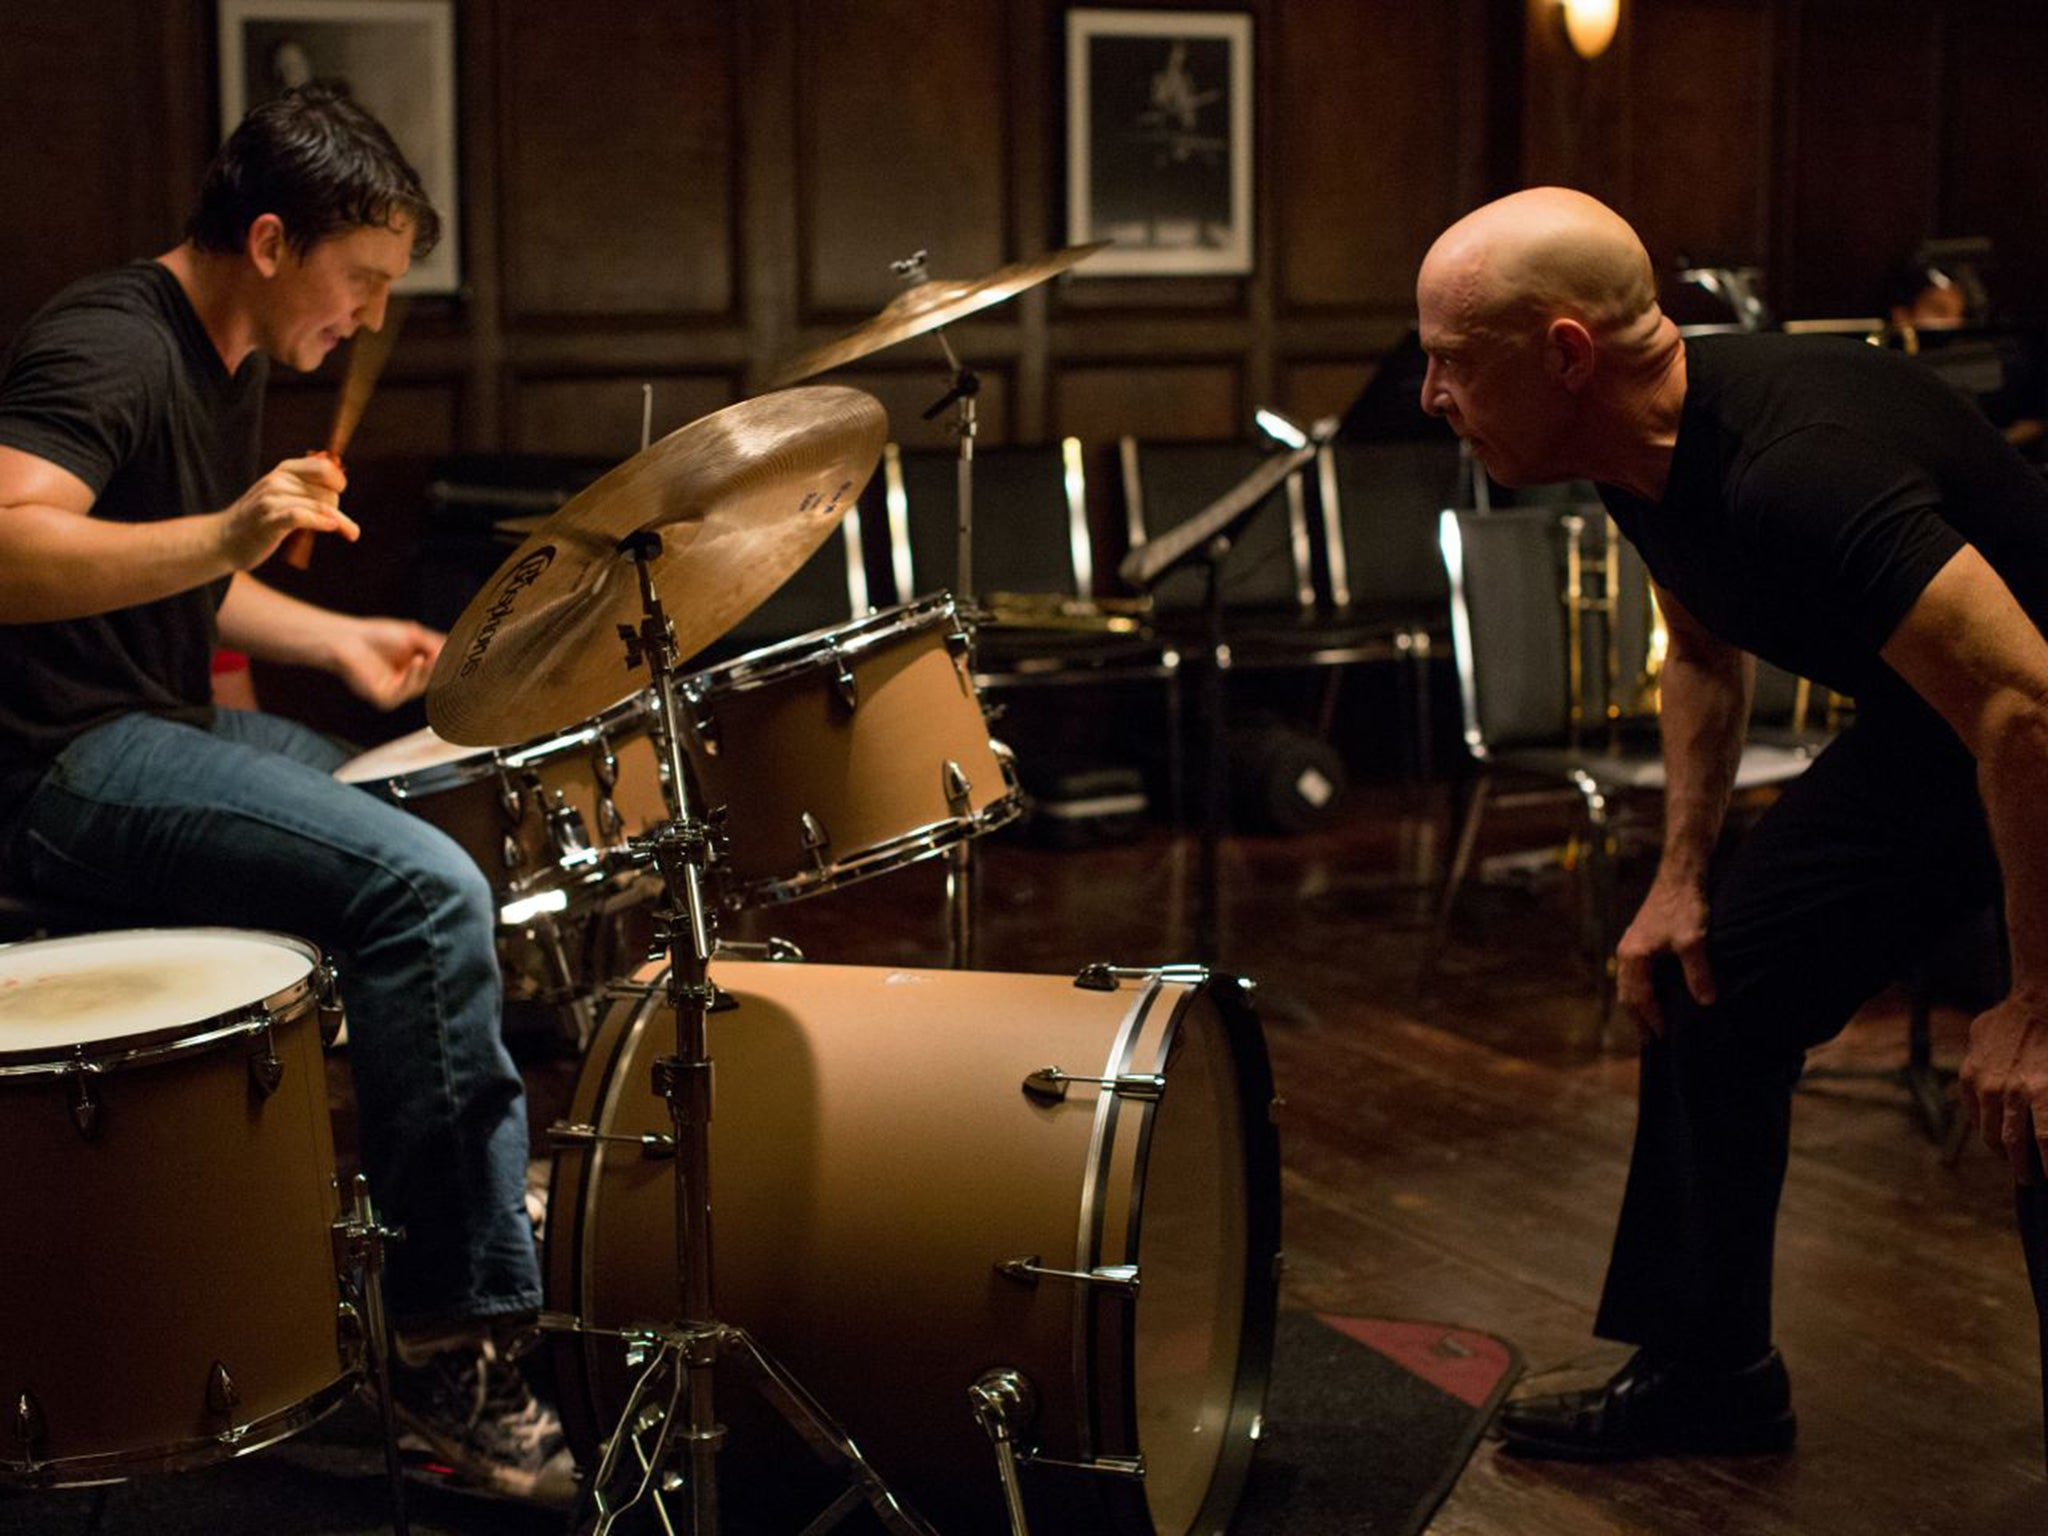 Whiplash: the film that puts the drummer in the limelight, at last